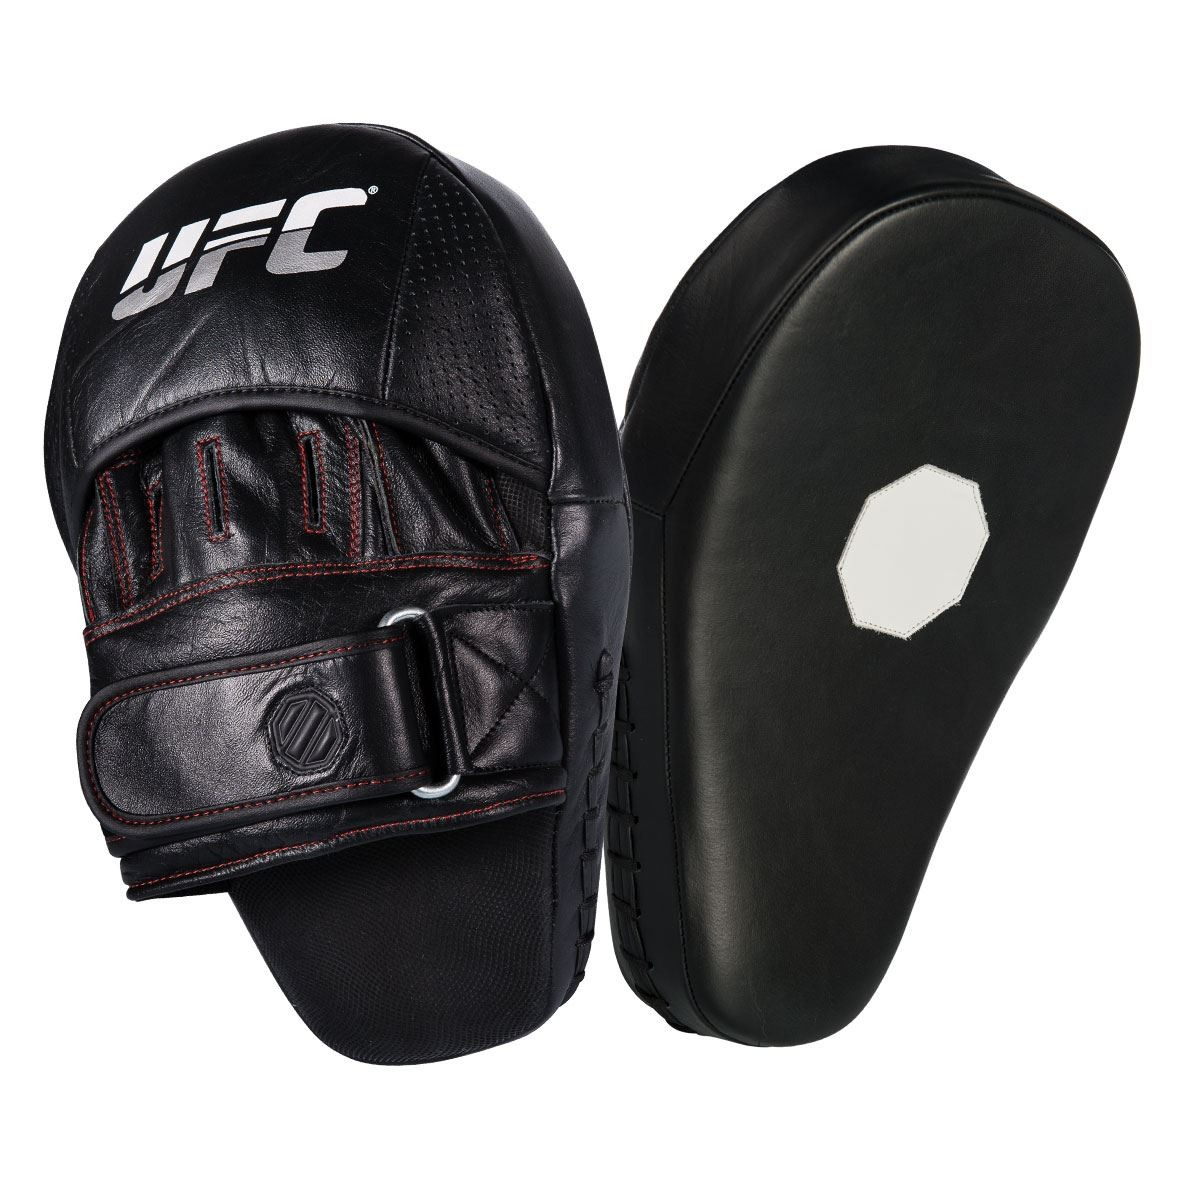 UFC Professional Long Focus Punching Mitts